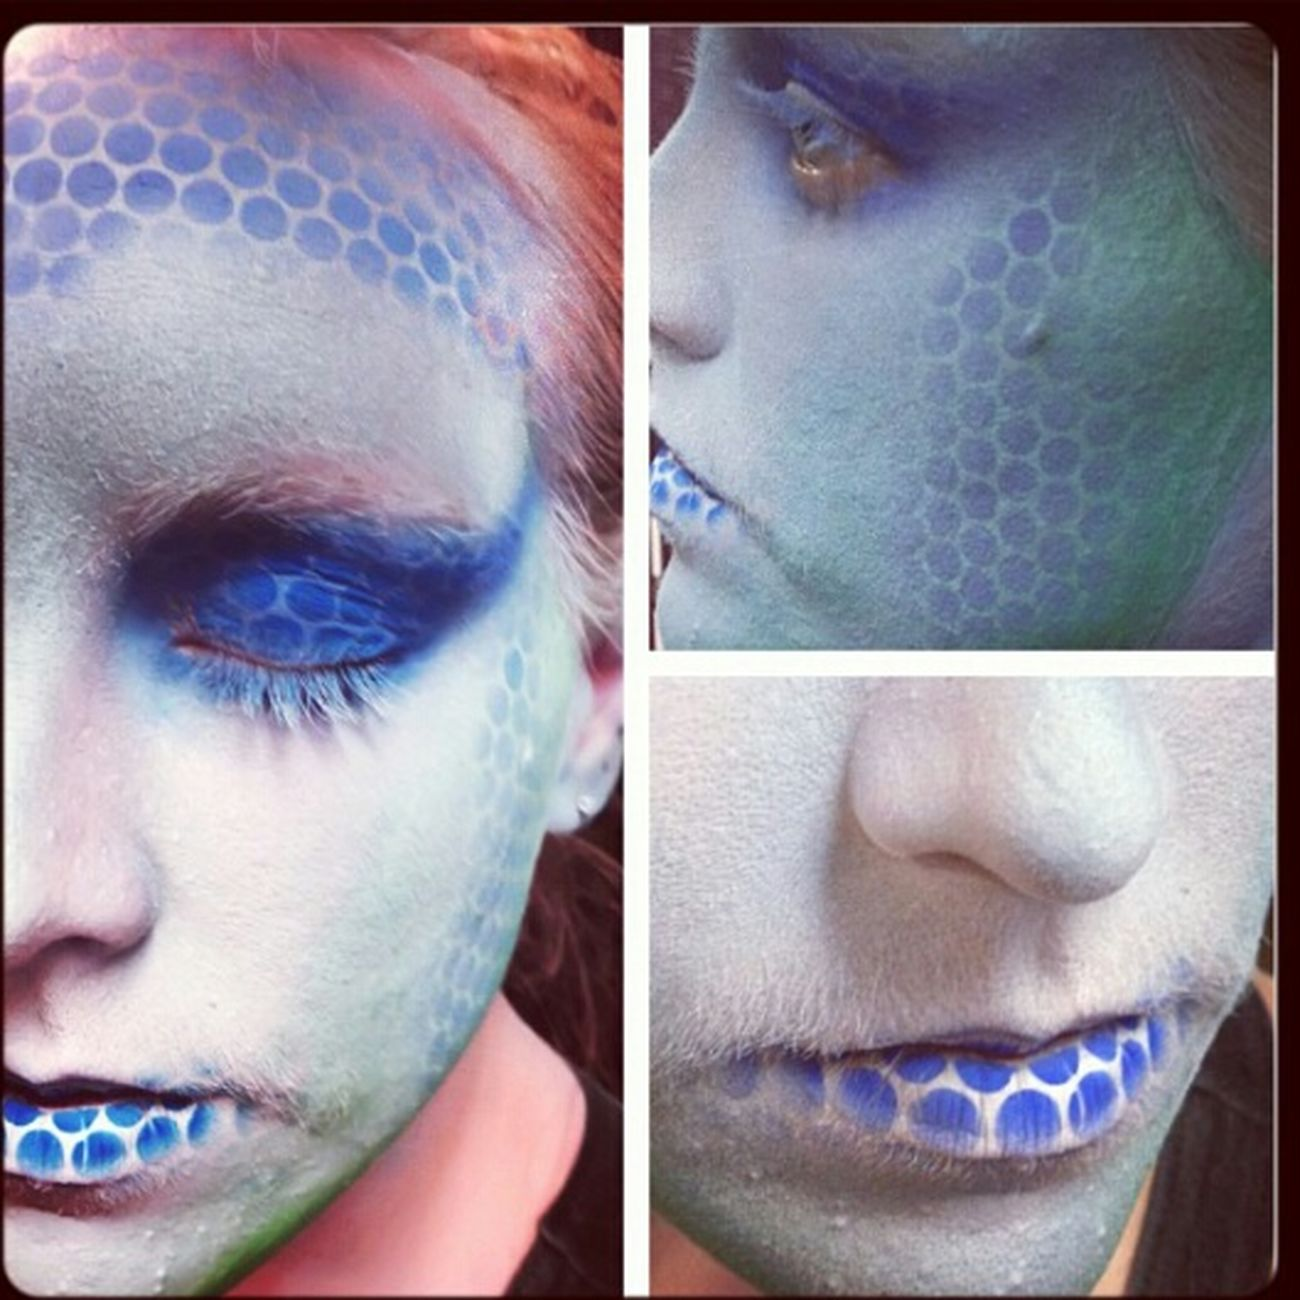 Ice lizard Airbrushmakeup Airbrushing Airbrushed Stencil Art Stencil Stencilart Makeup Makeupartist Makeup ♥ Check This Out Hello World Mua Theatriclemakeup Stage Stagemakeup